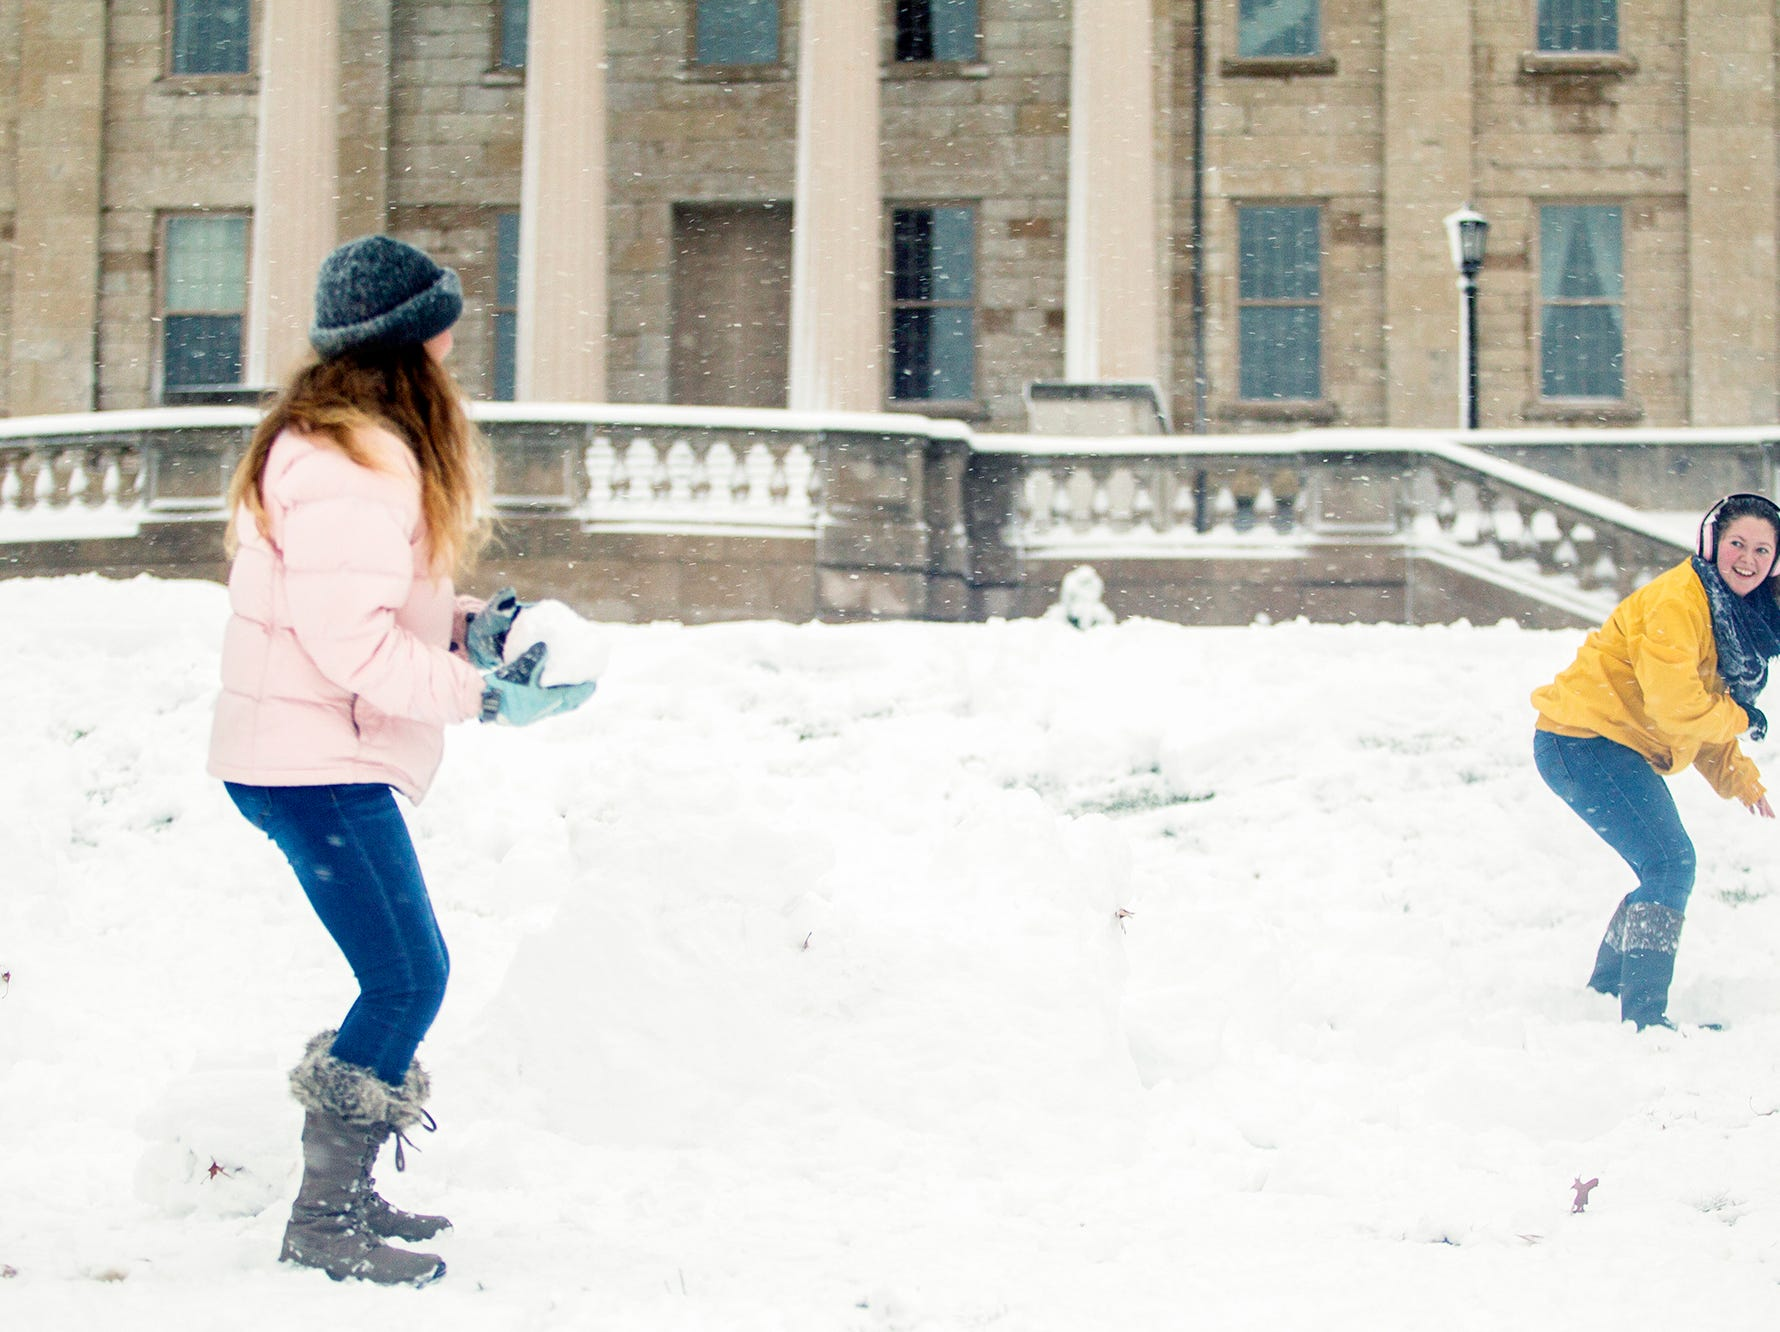 University of Iowa freshman Sarah Nighswonger, right, and Caroline Pickart throw snowballs during a snow storm on Sunday, Nov. 25, 2018, on the west side of the Pentacrest in Iowa City.